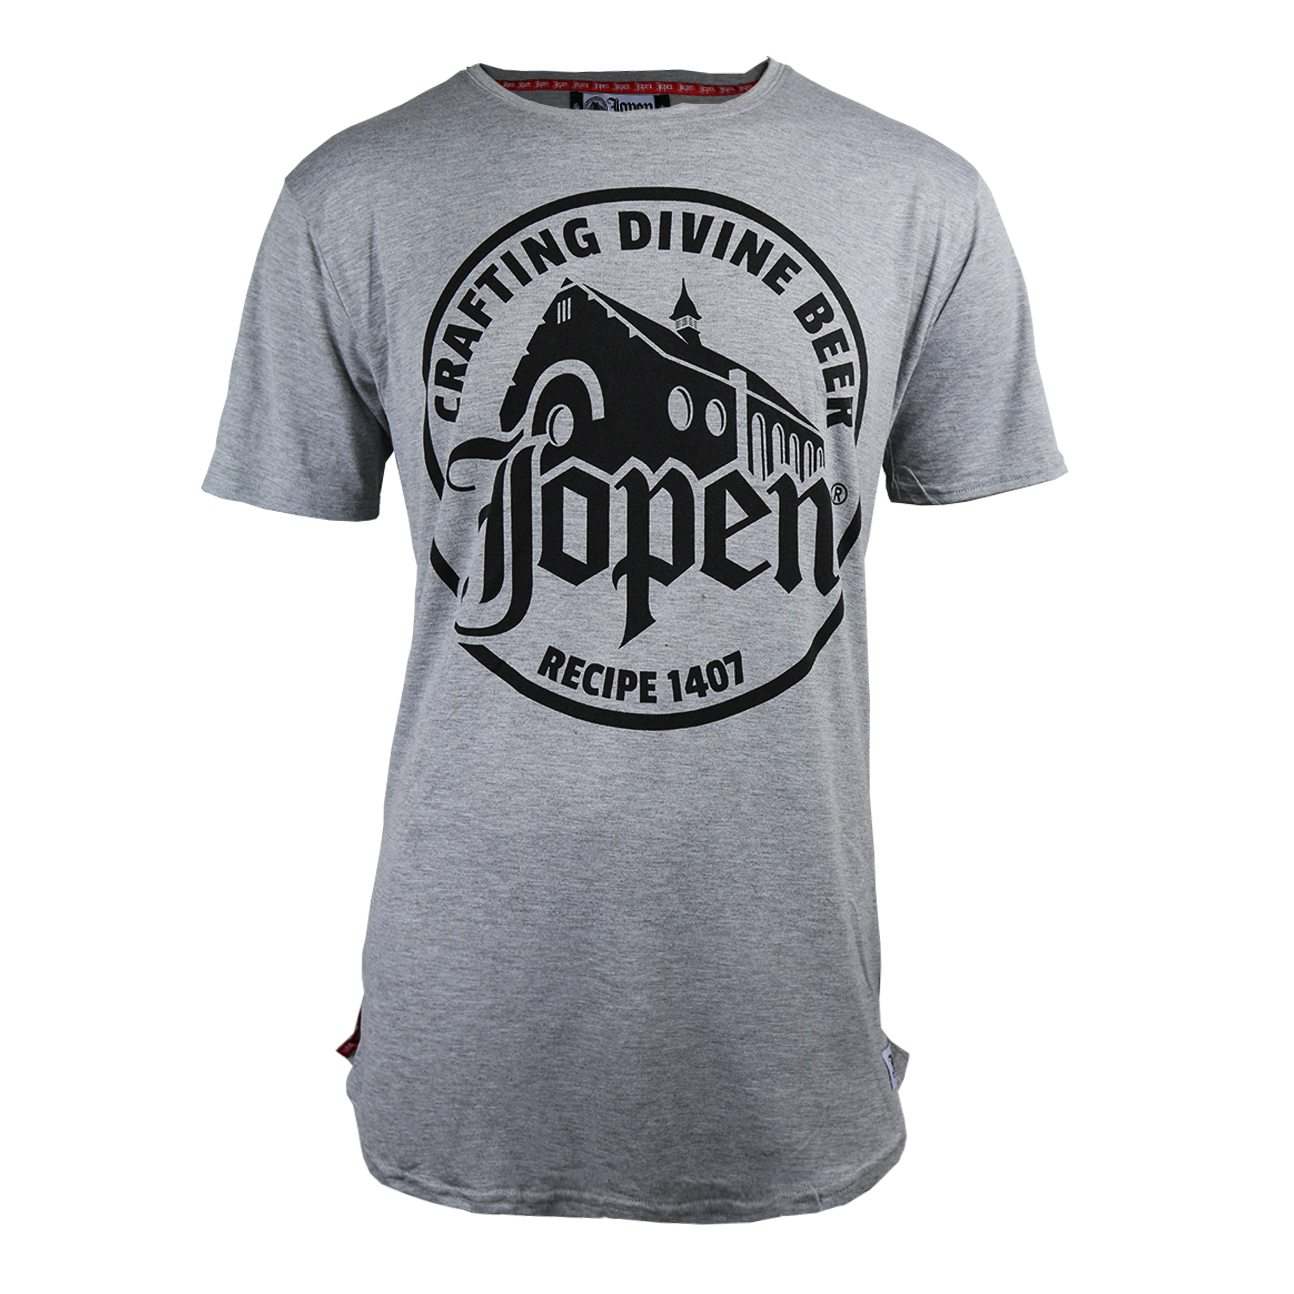 Jopen shirt men Crafting Divine Beer grey